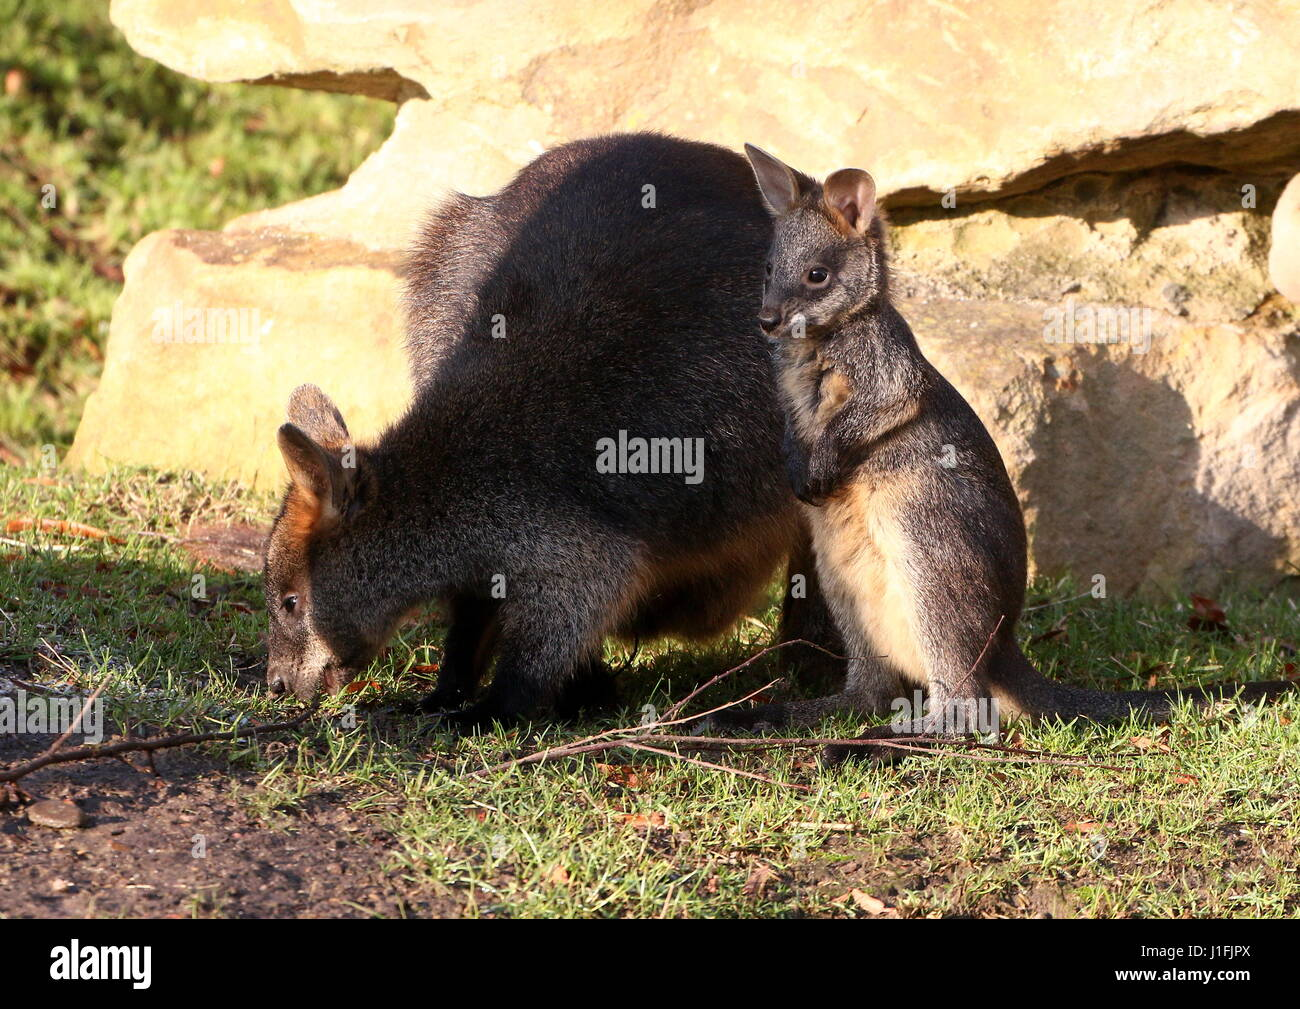 Baby Swamp Wallaby joey (Wallabia bicolor) feeding with his mother. A.k.a. Black Pademelon or East Australian Black Stock Photo